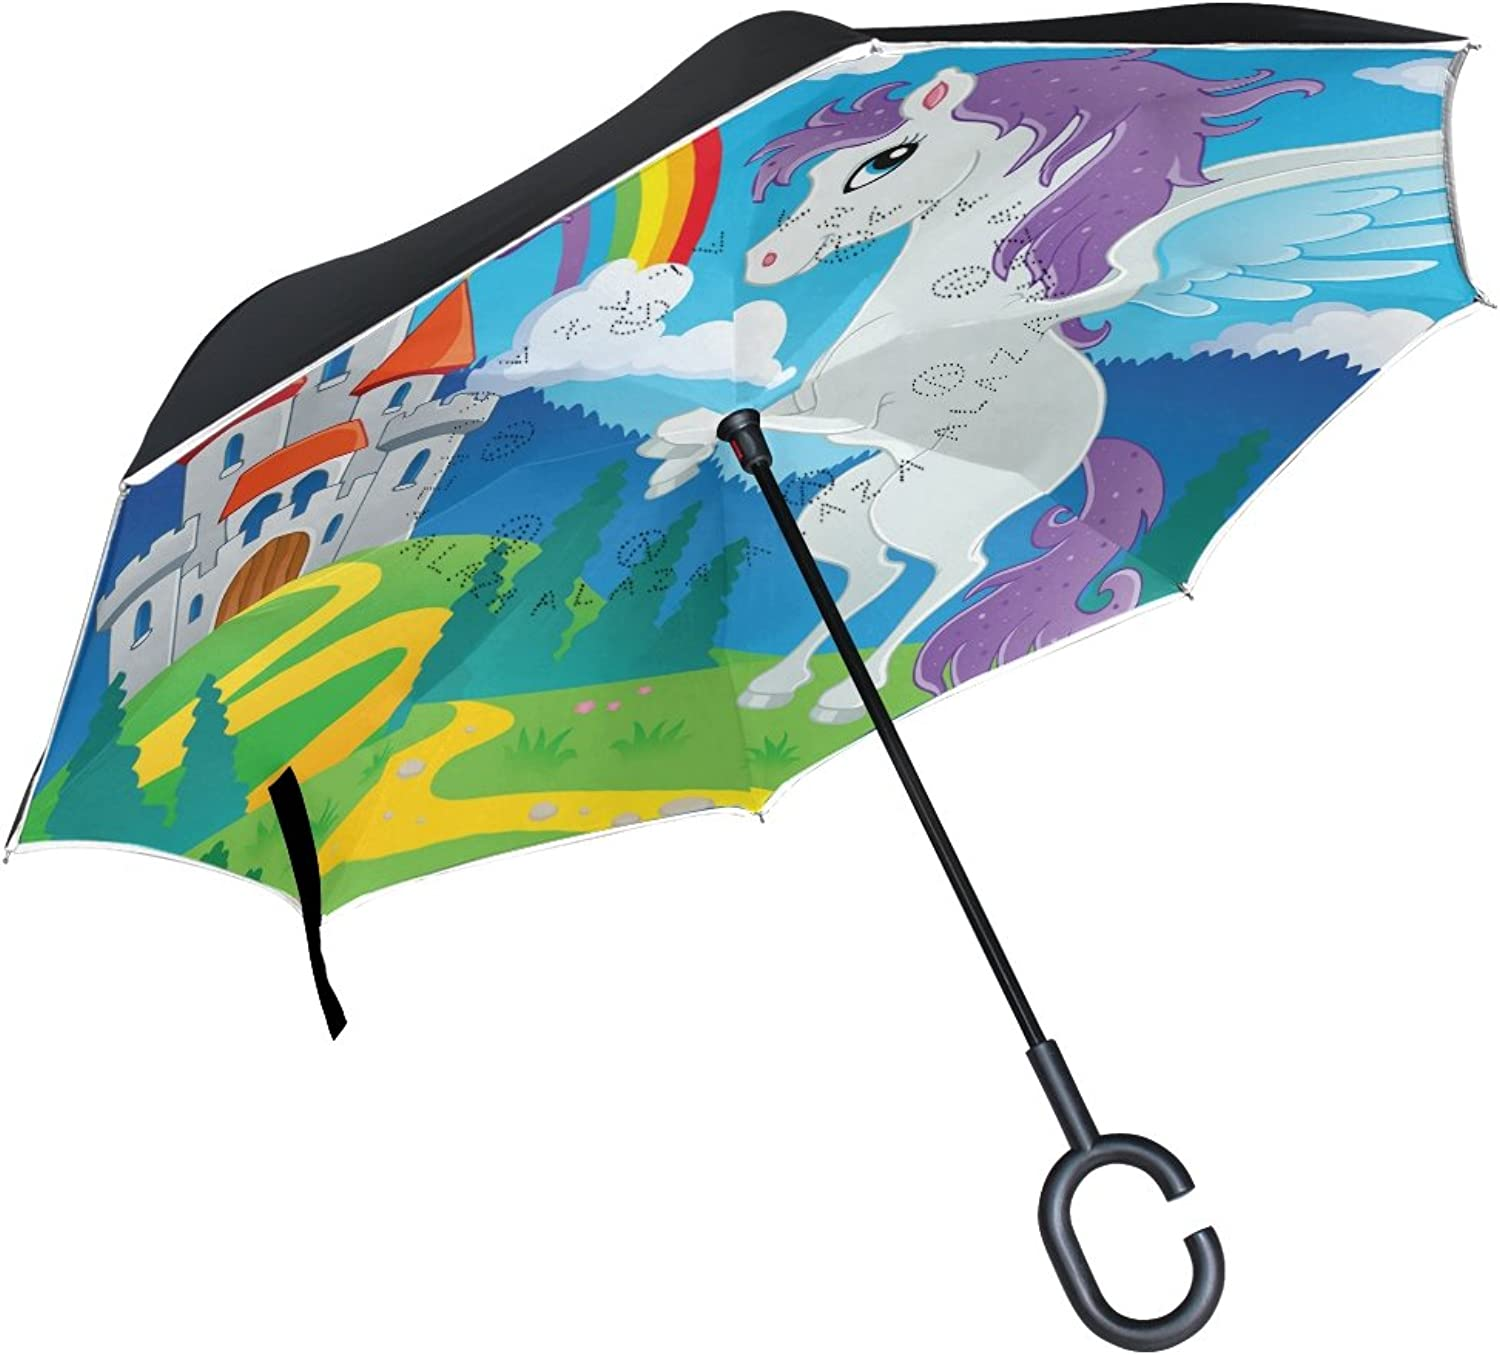 Mydaily Double Layer Ingreened Umbrella Cars Reverse Umbrella Fairy Tale Castle Pegasus Rainbow Windproof UV Proof Travel Outdoor Umbrella